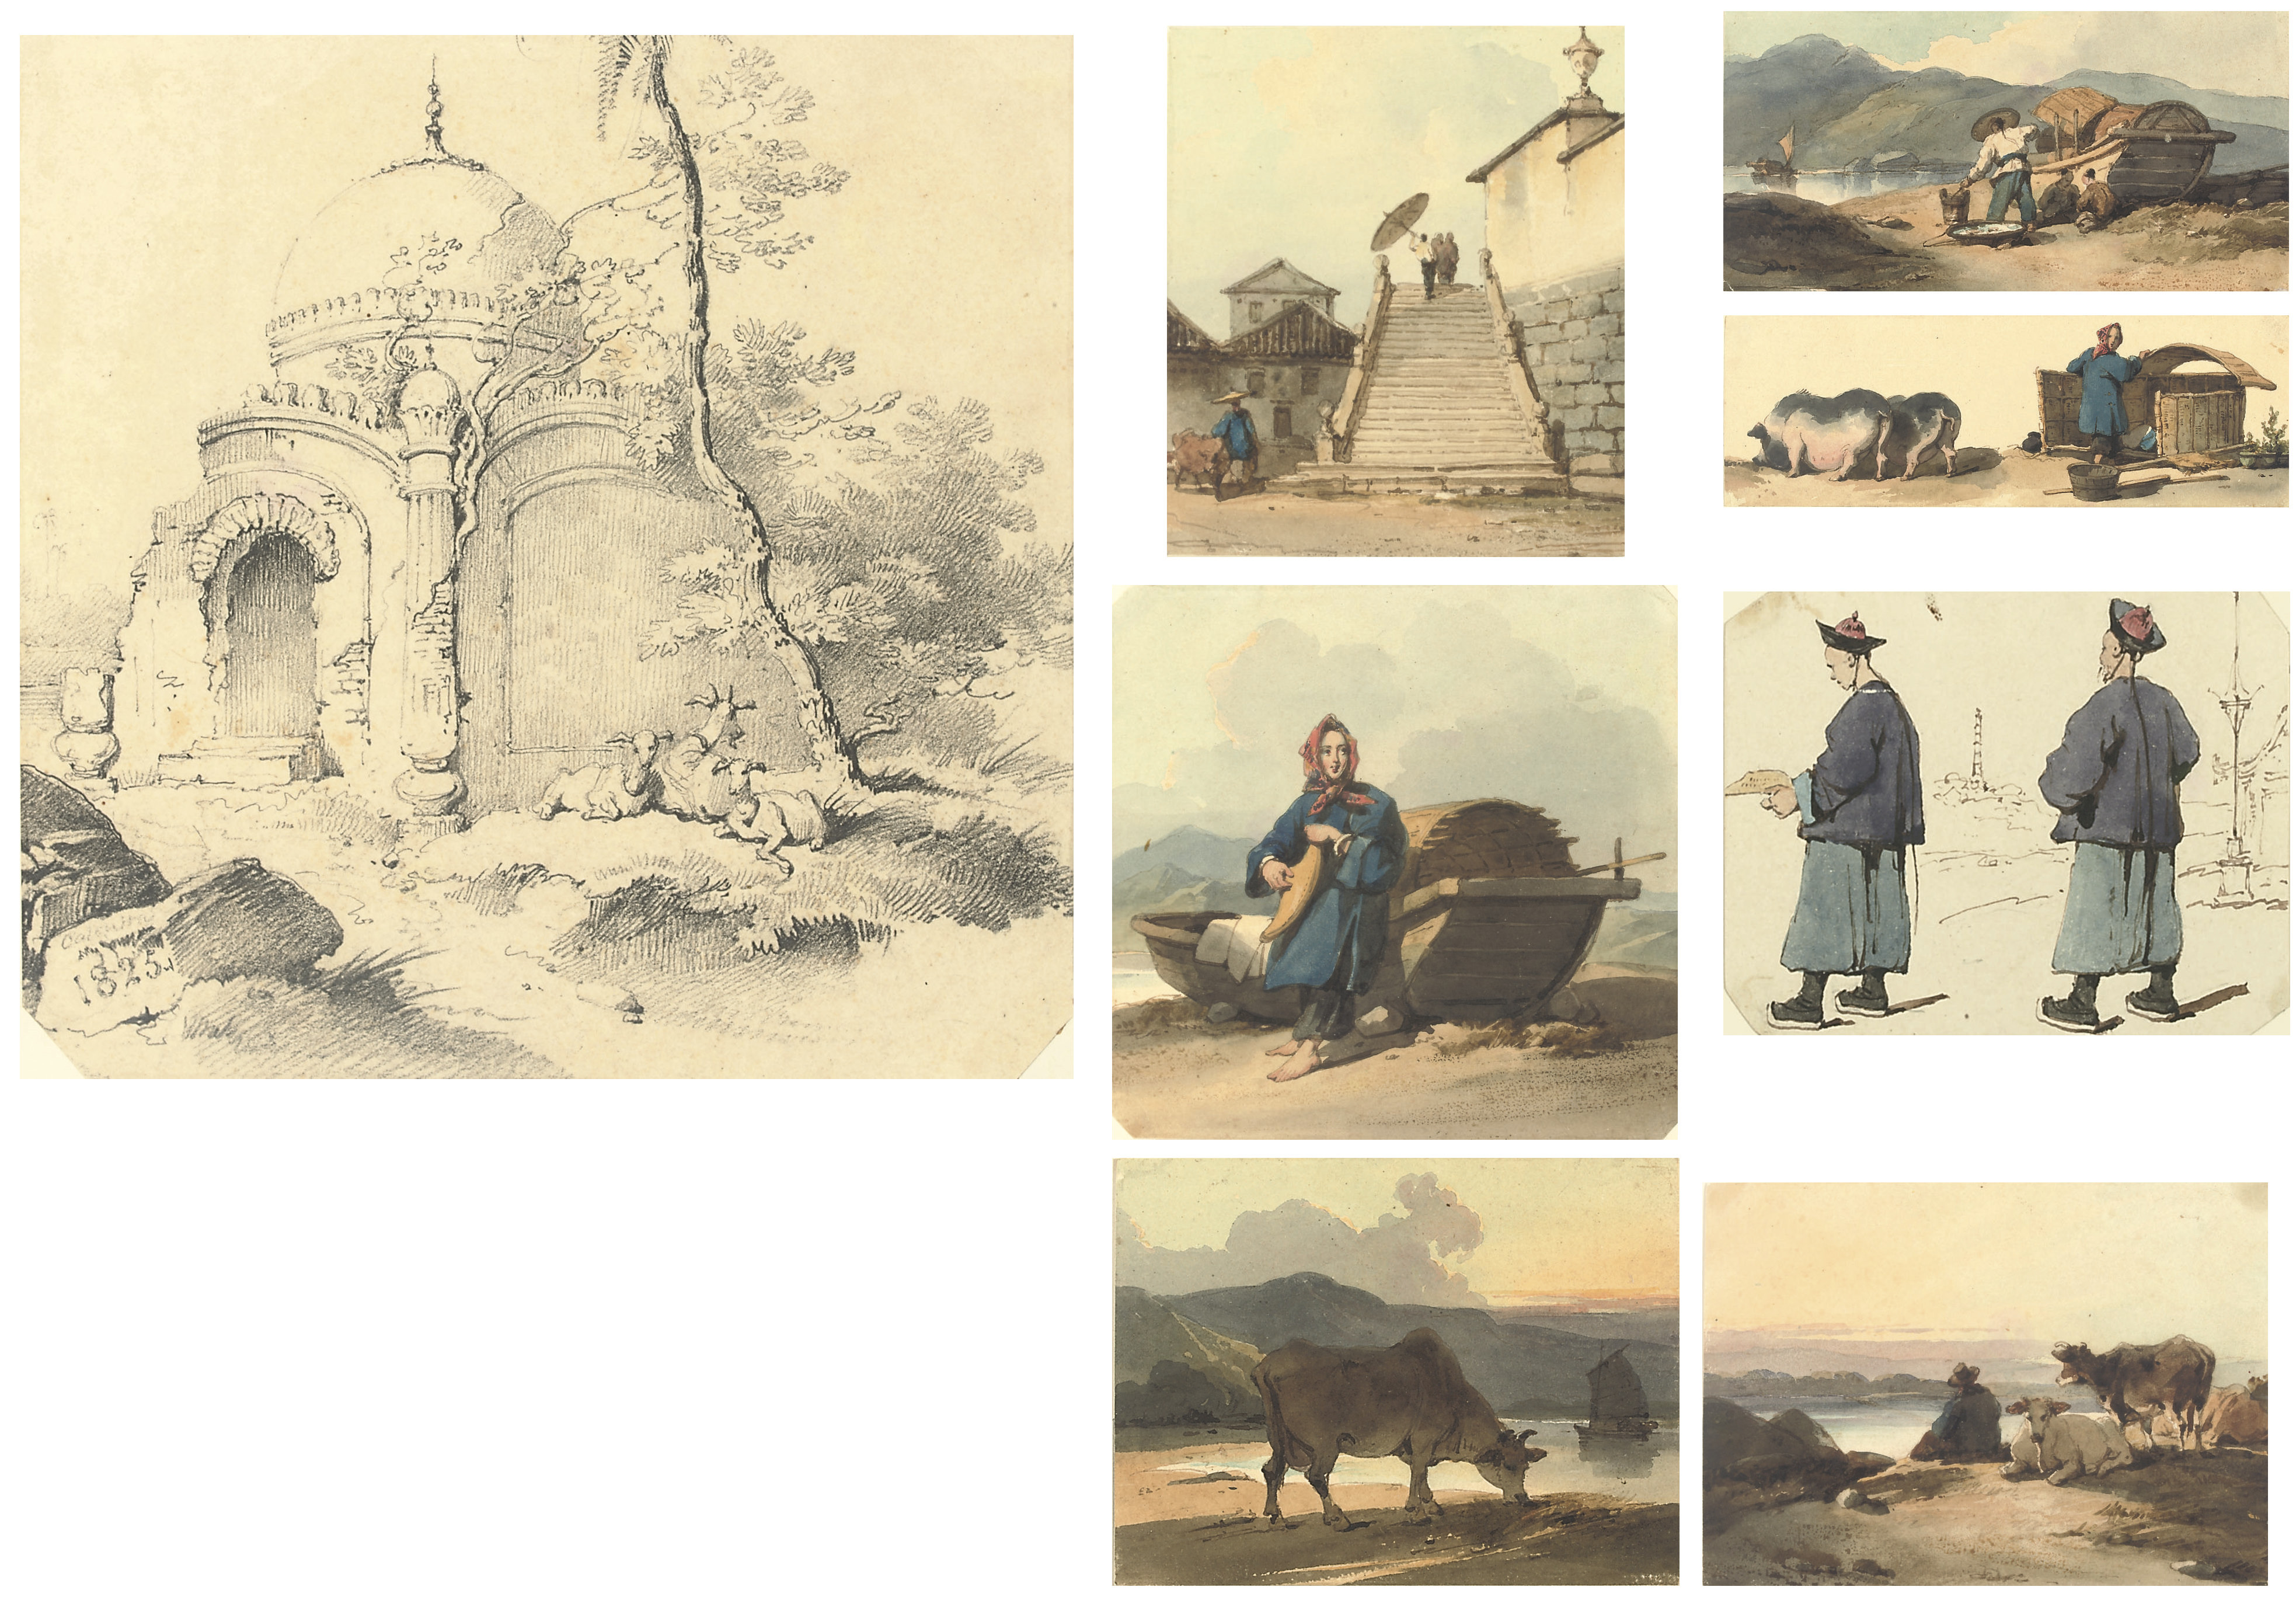 An album of 71 drawings and watercolours, mounted on 70 card leaves, including 18 watercolours and 2 drawings of Chinese subjects (Macao and environs), and 7 watercolours and 5 drawings of Indian subjects, the majority by an unknown imitator of Chinnery, the remainder drawings and watercolours of English and Continental scenery by and after Pyne, Buckley, Campion, Dodd, D'Oyly and others